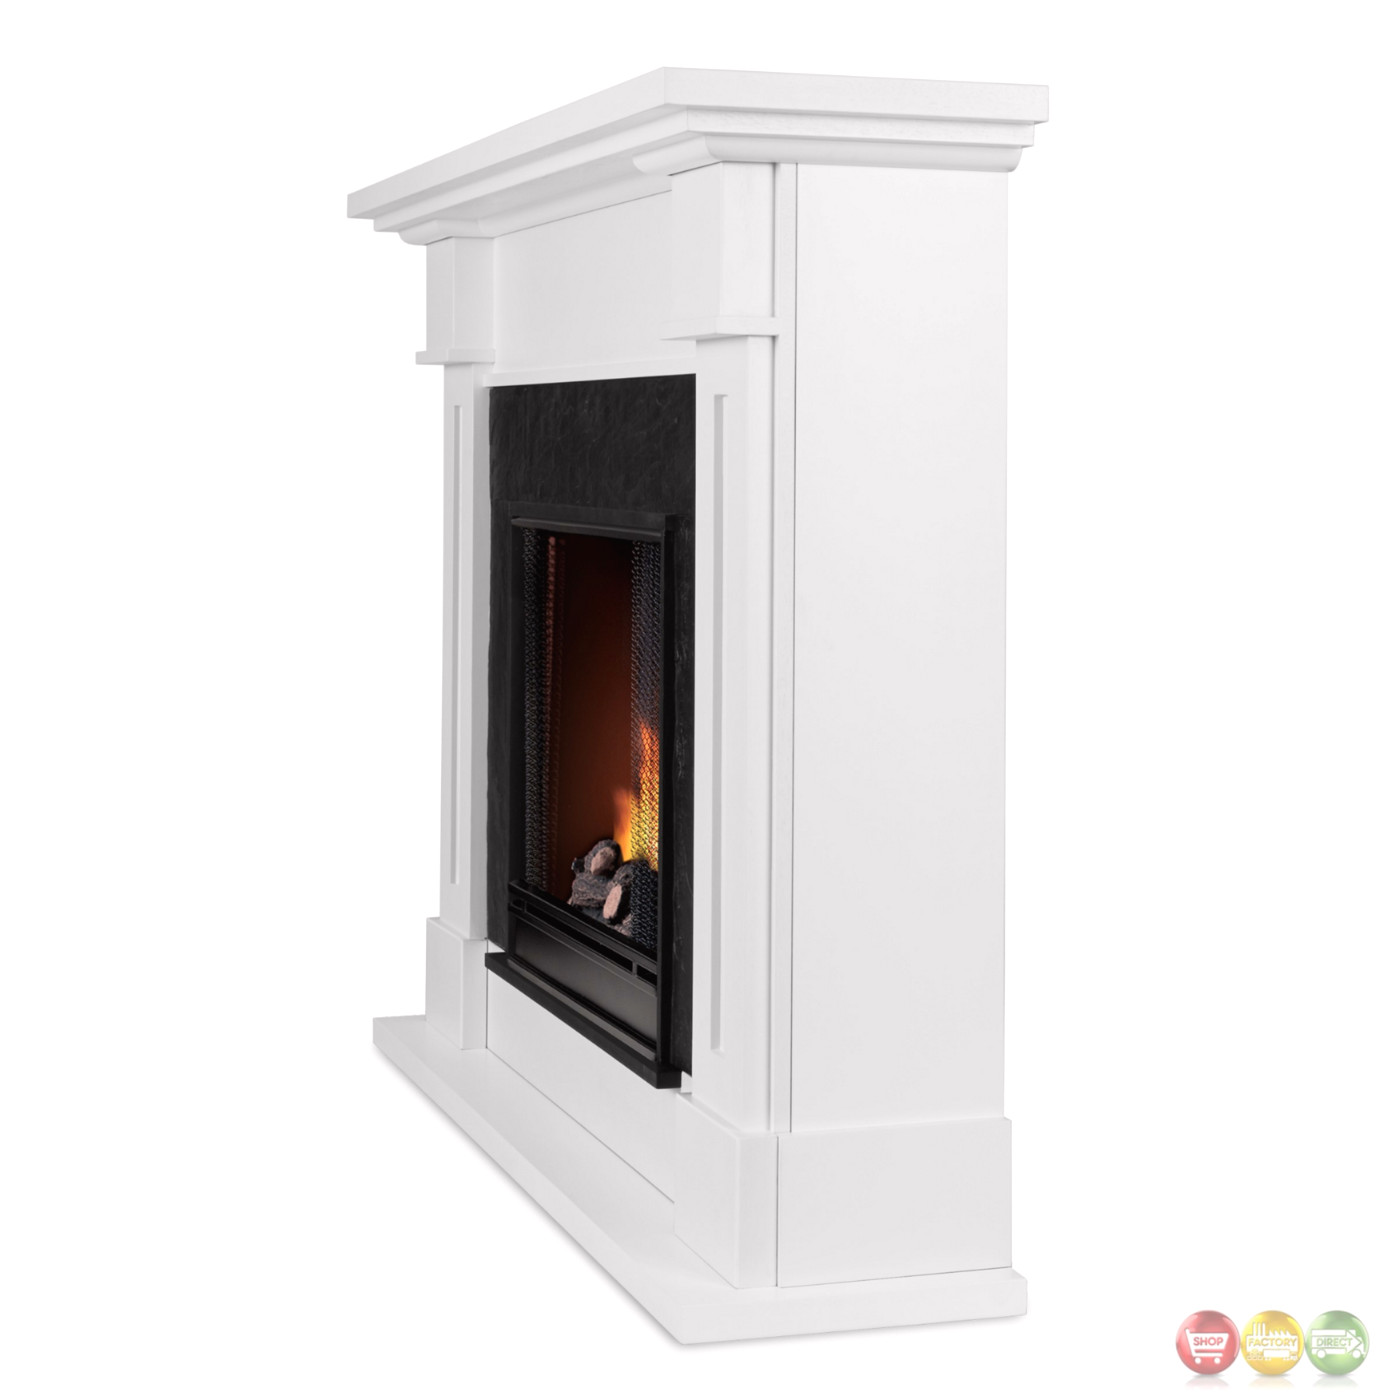 Kipling Ventless Gel Fuel Fireplace In White With Cast